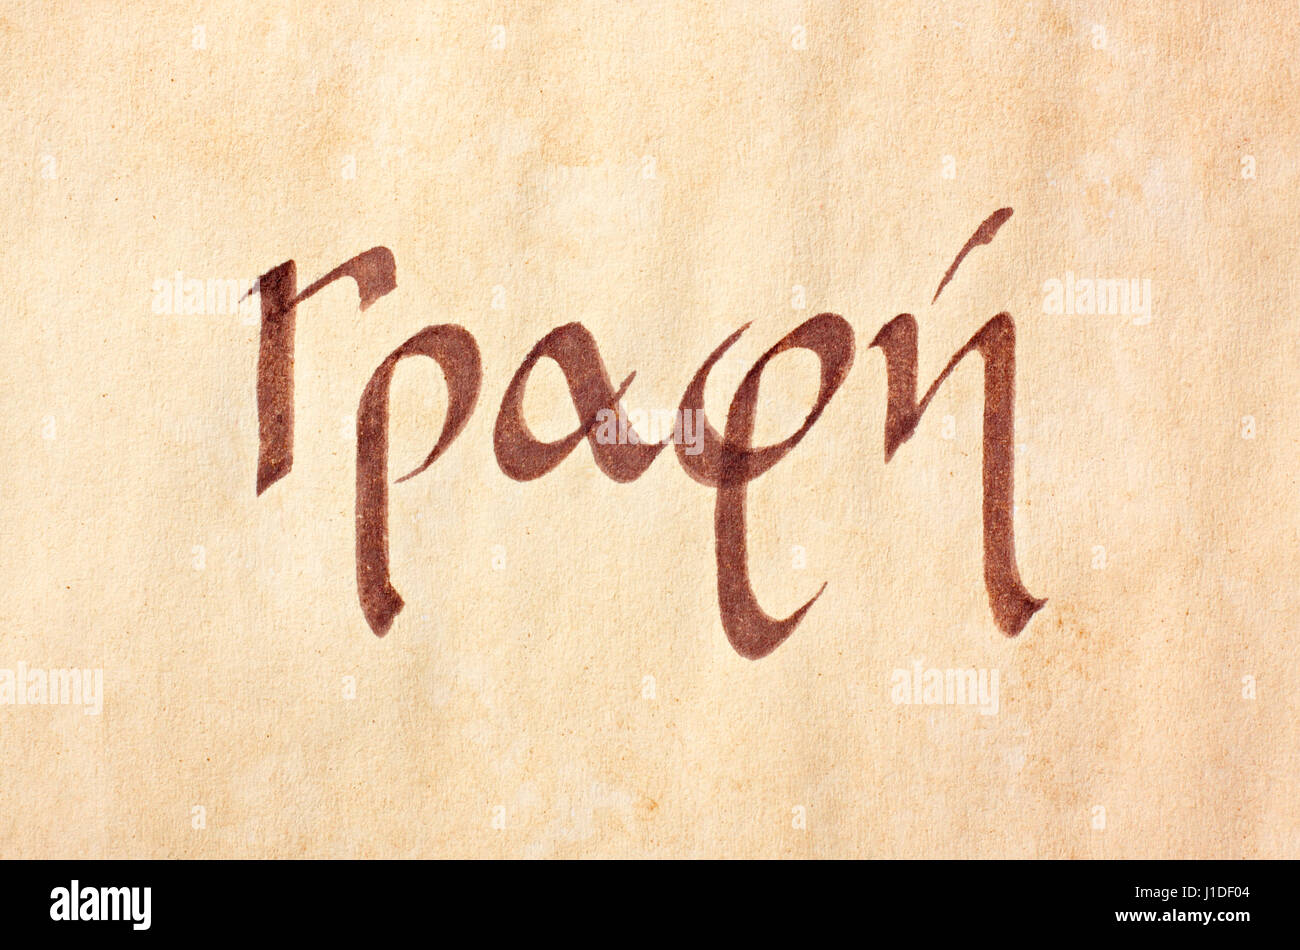 Handwritten word writing in greek language and script on the aged paper - Stock Image